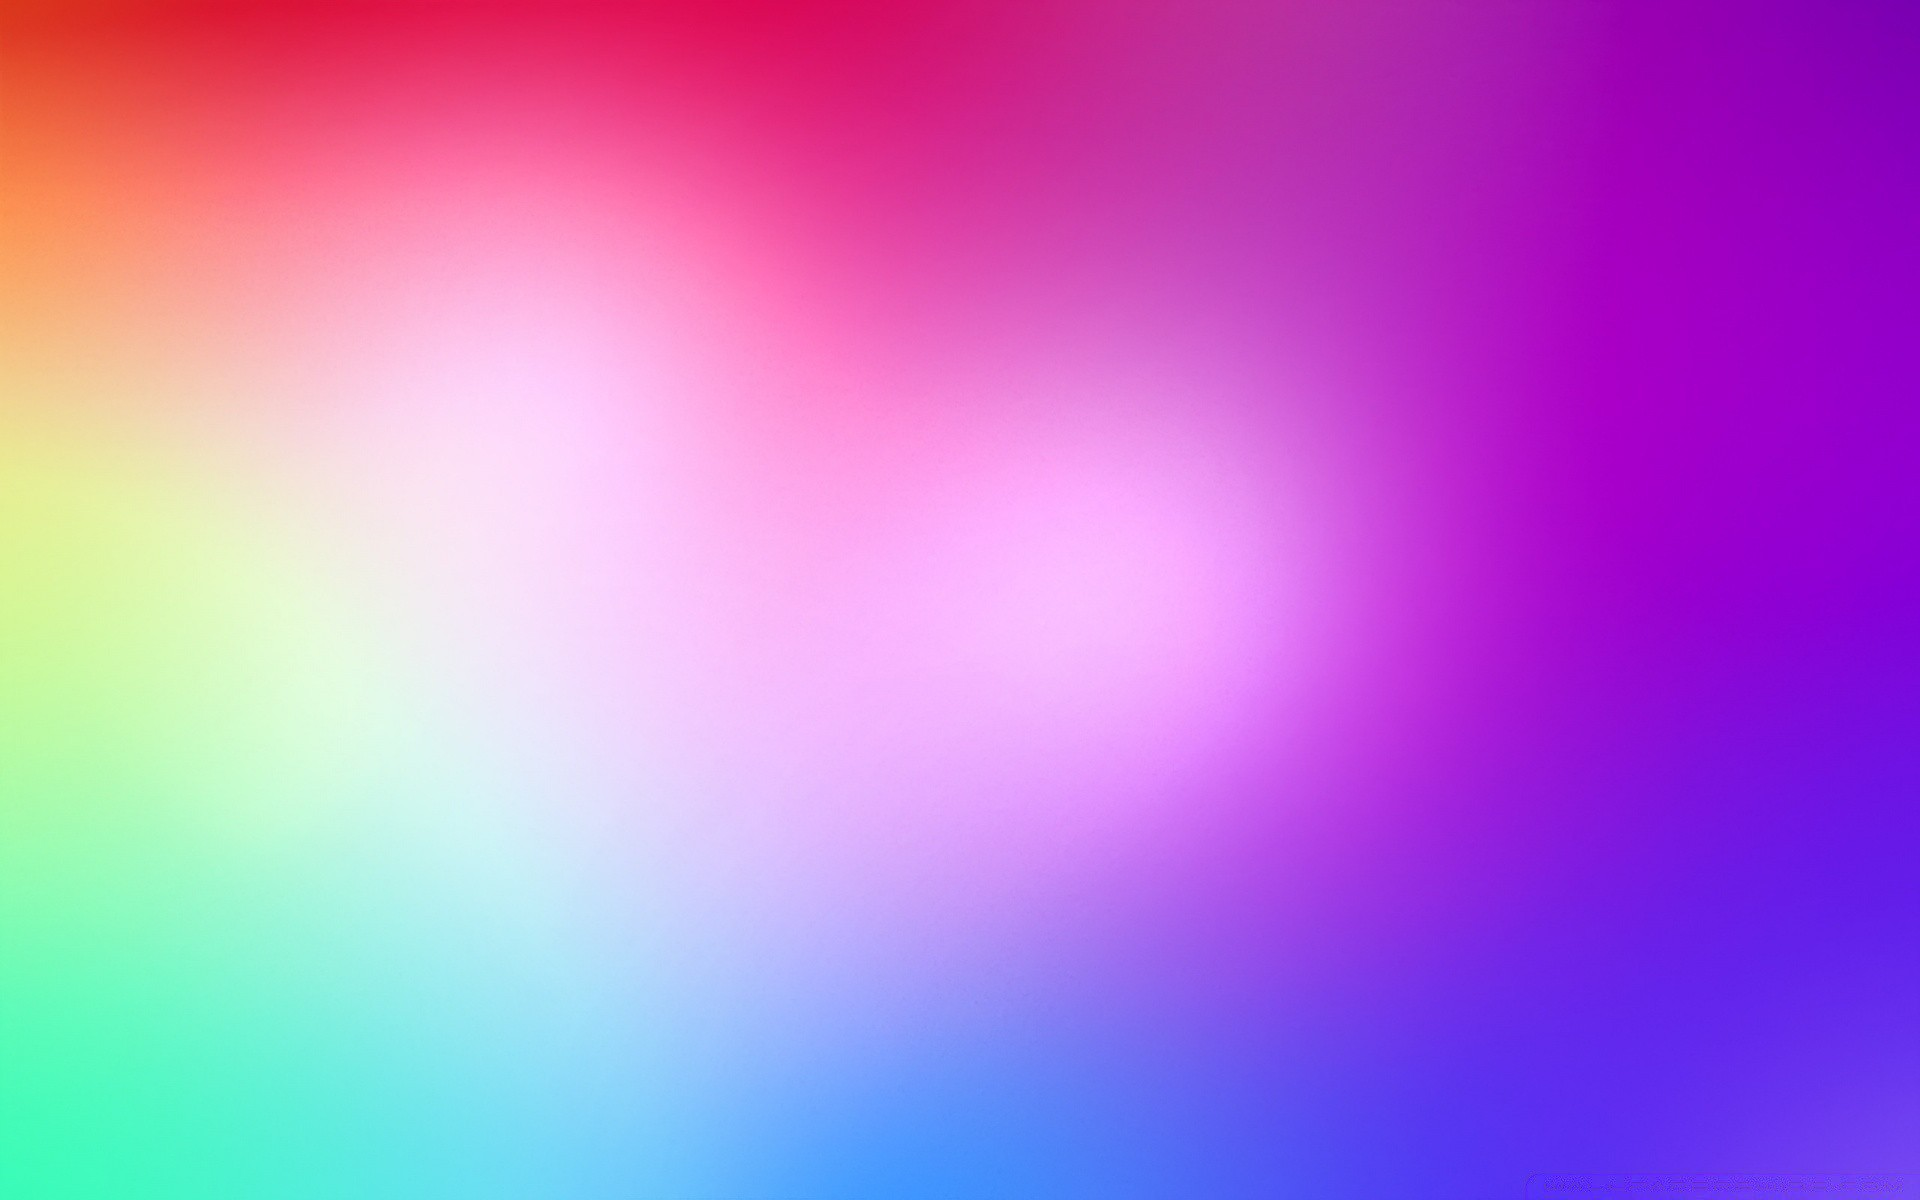 bright colors abstract light graphic background wallpaper blur illustration art spectrum design color bright element pattern desktop template texture shining futuristic violet